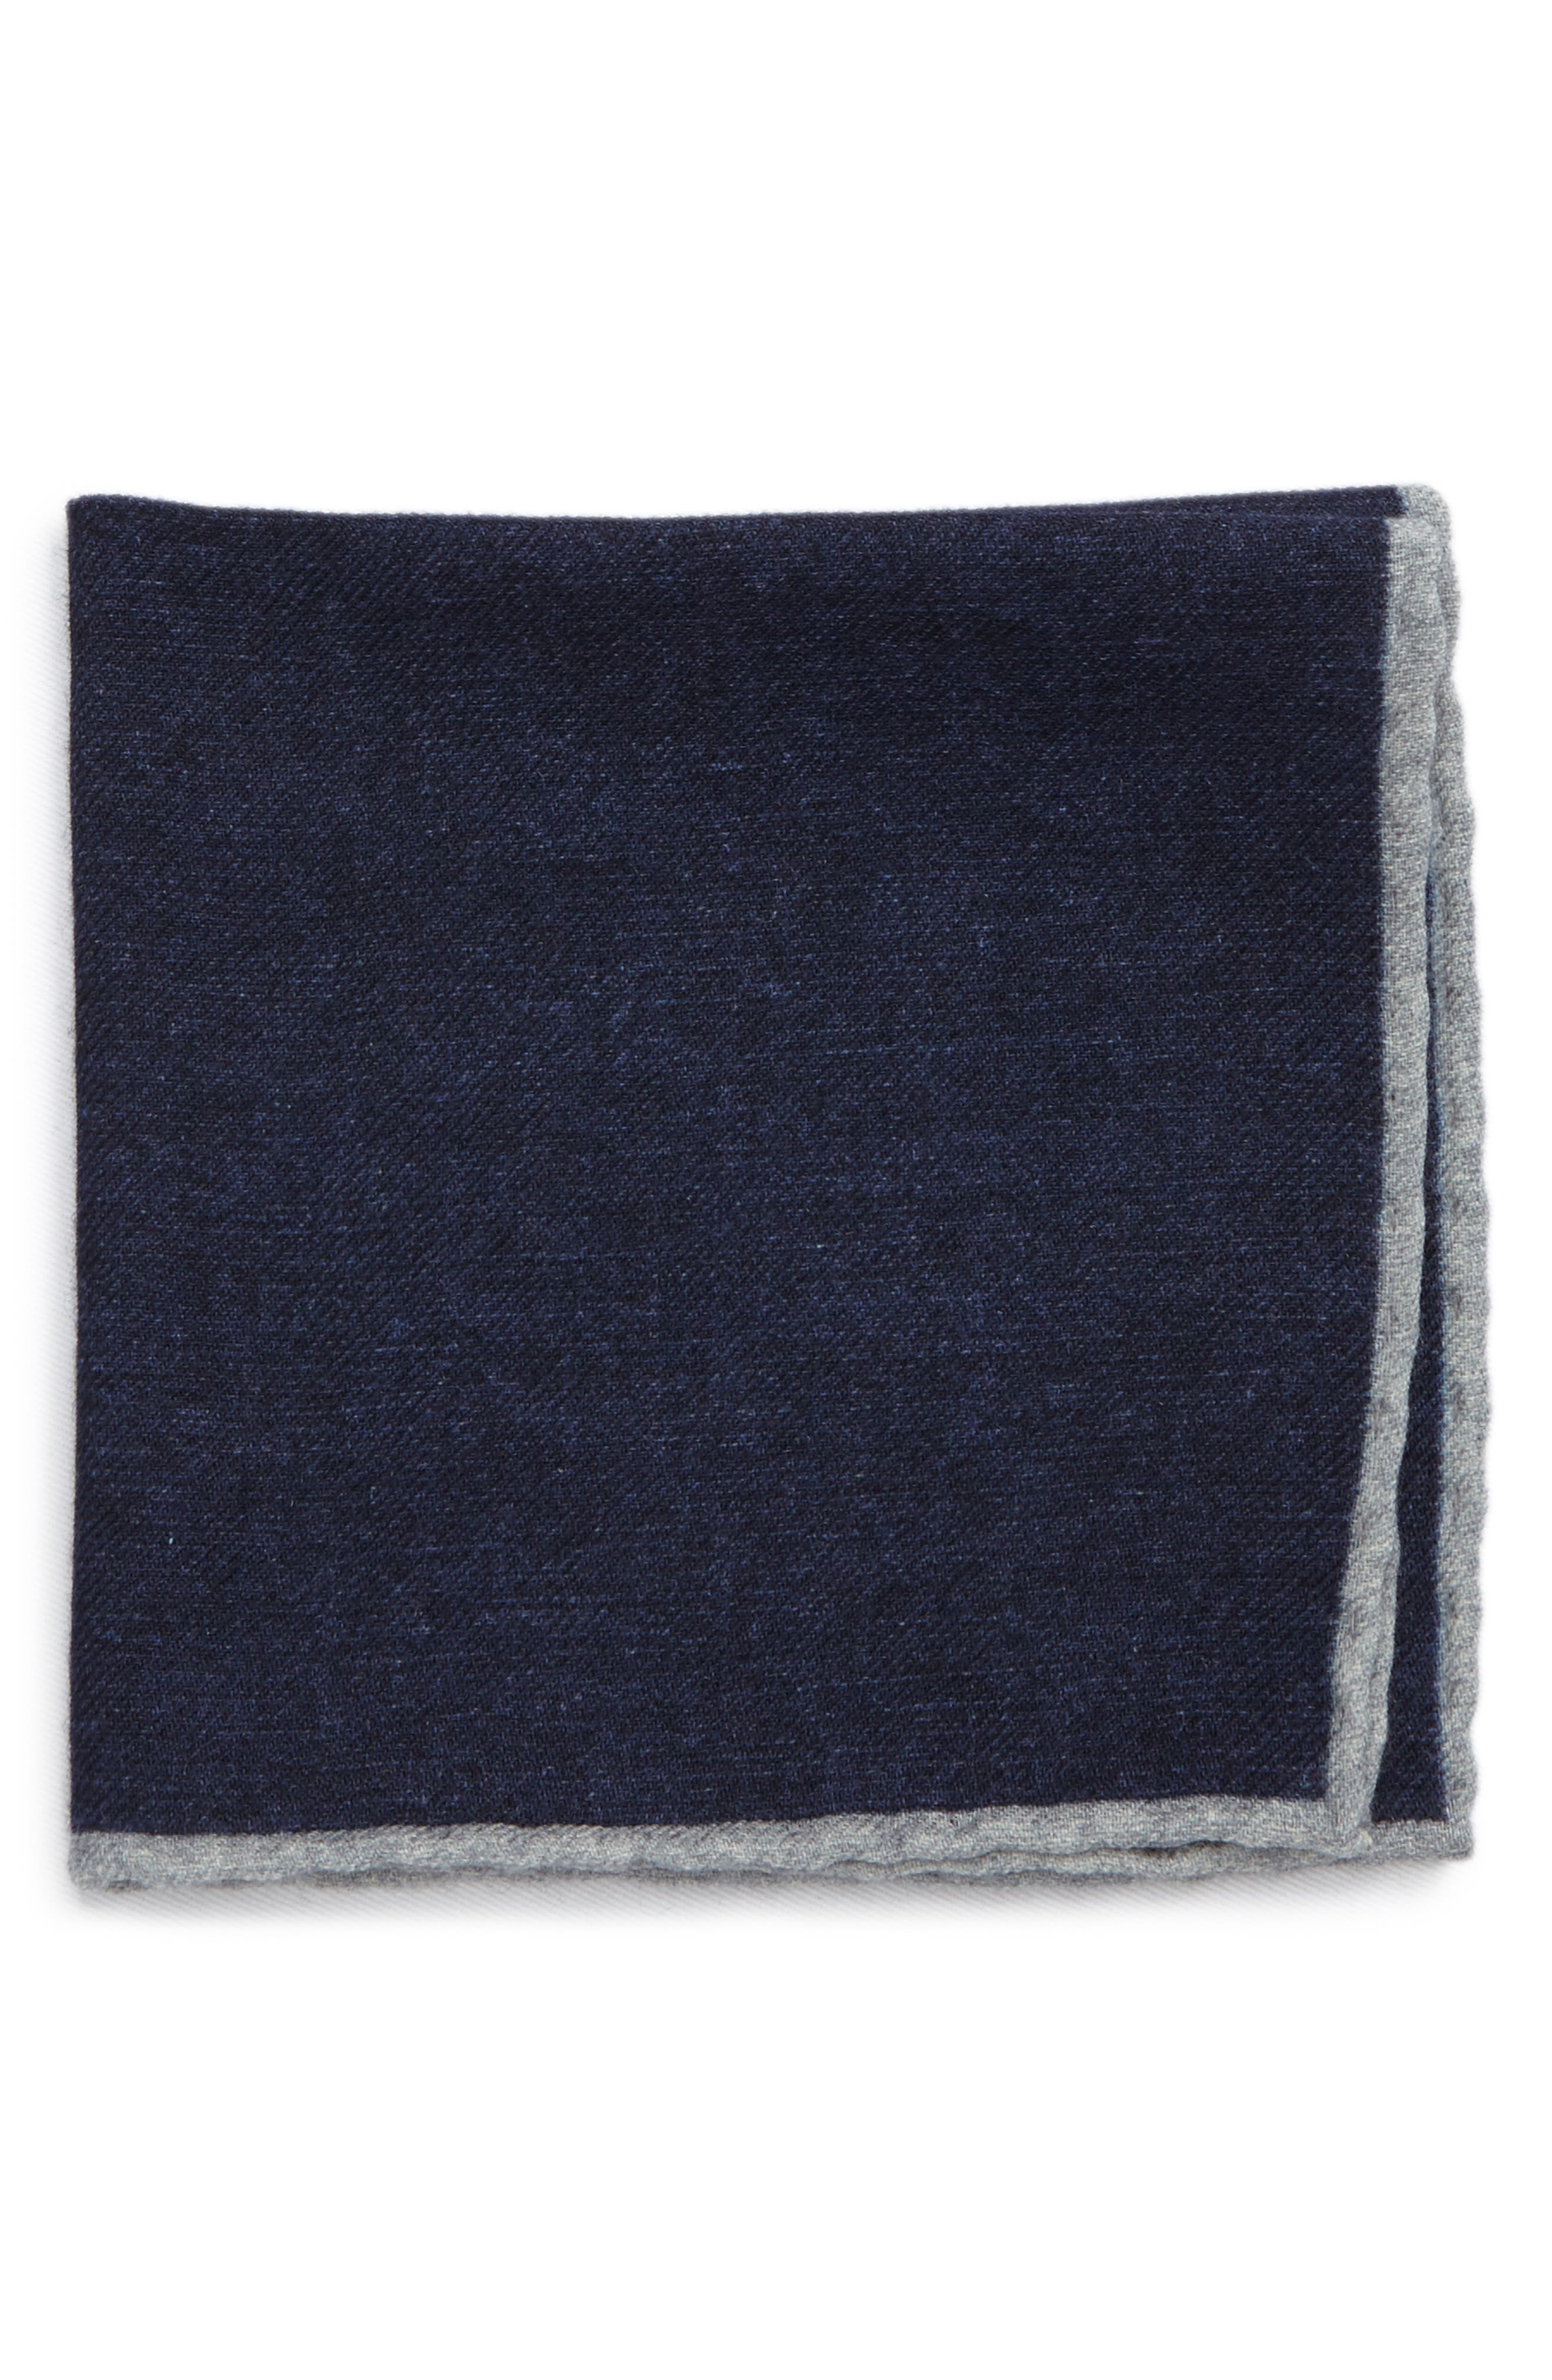 Flannel Wool Pocket Square,                             Main thumbnail 1, color,                             Blue